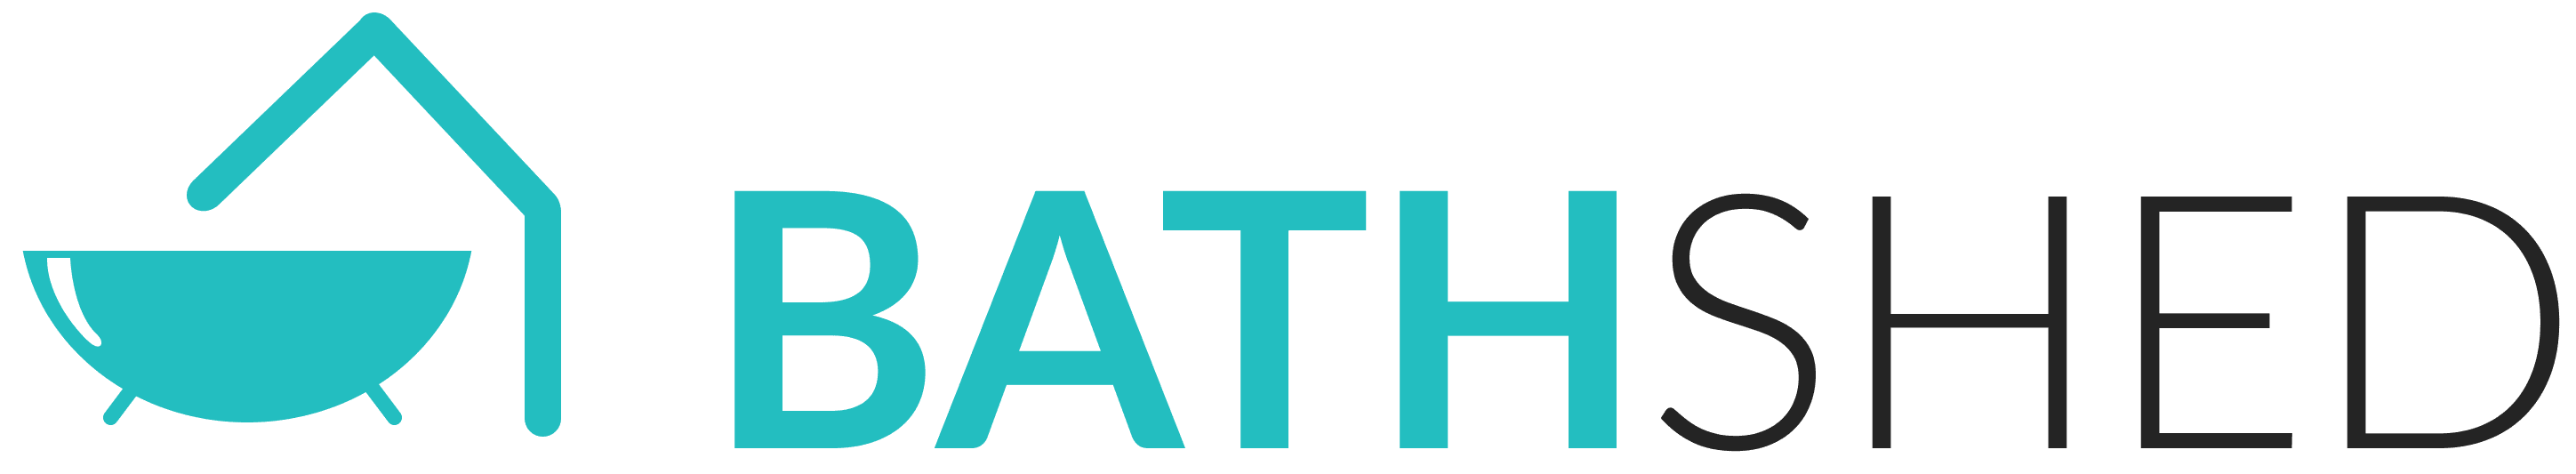 Bathshed logo